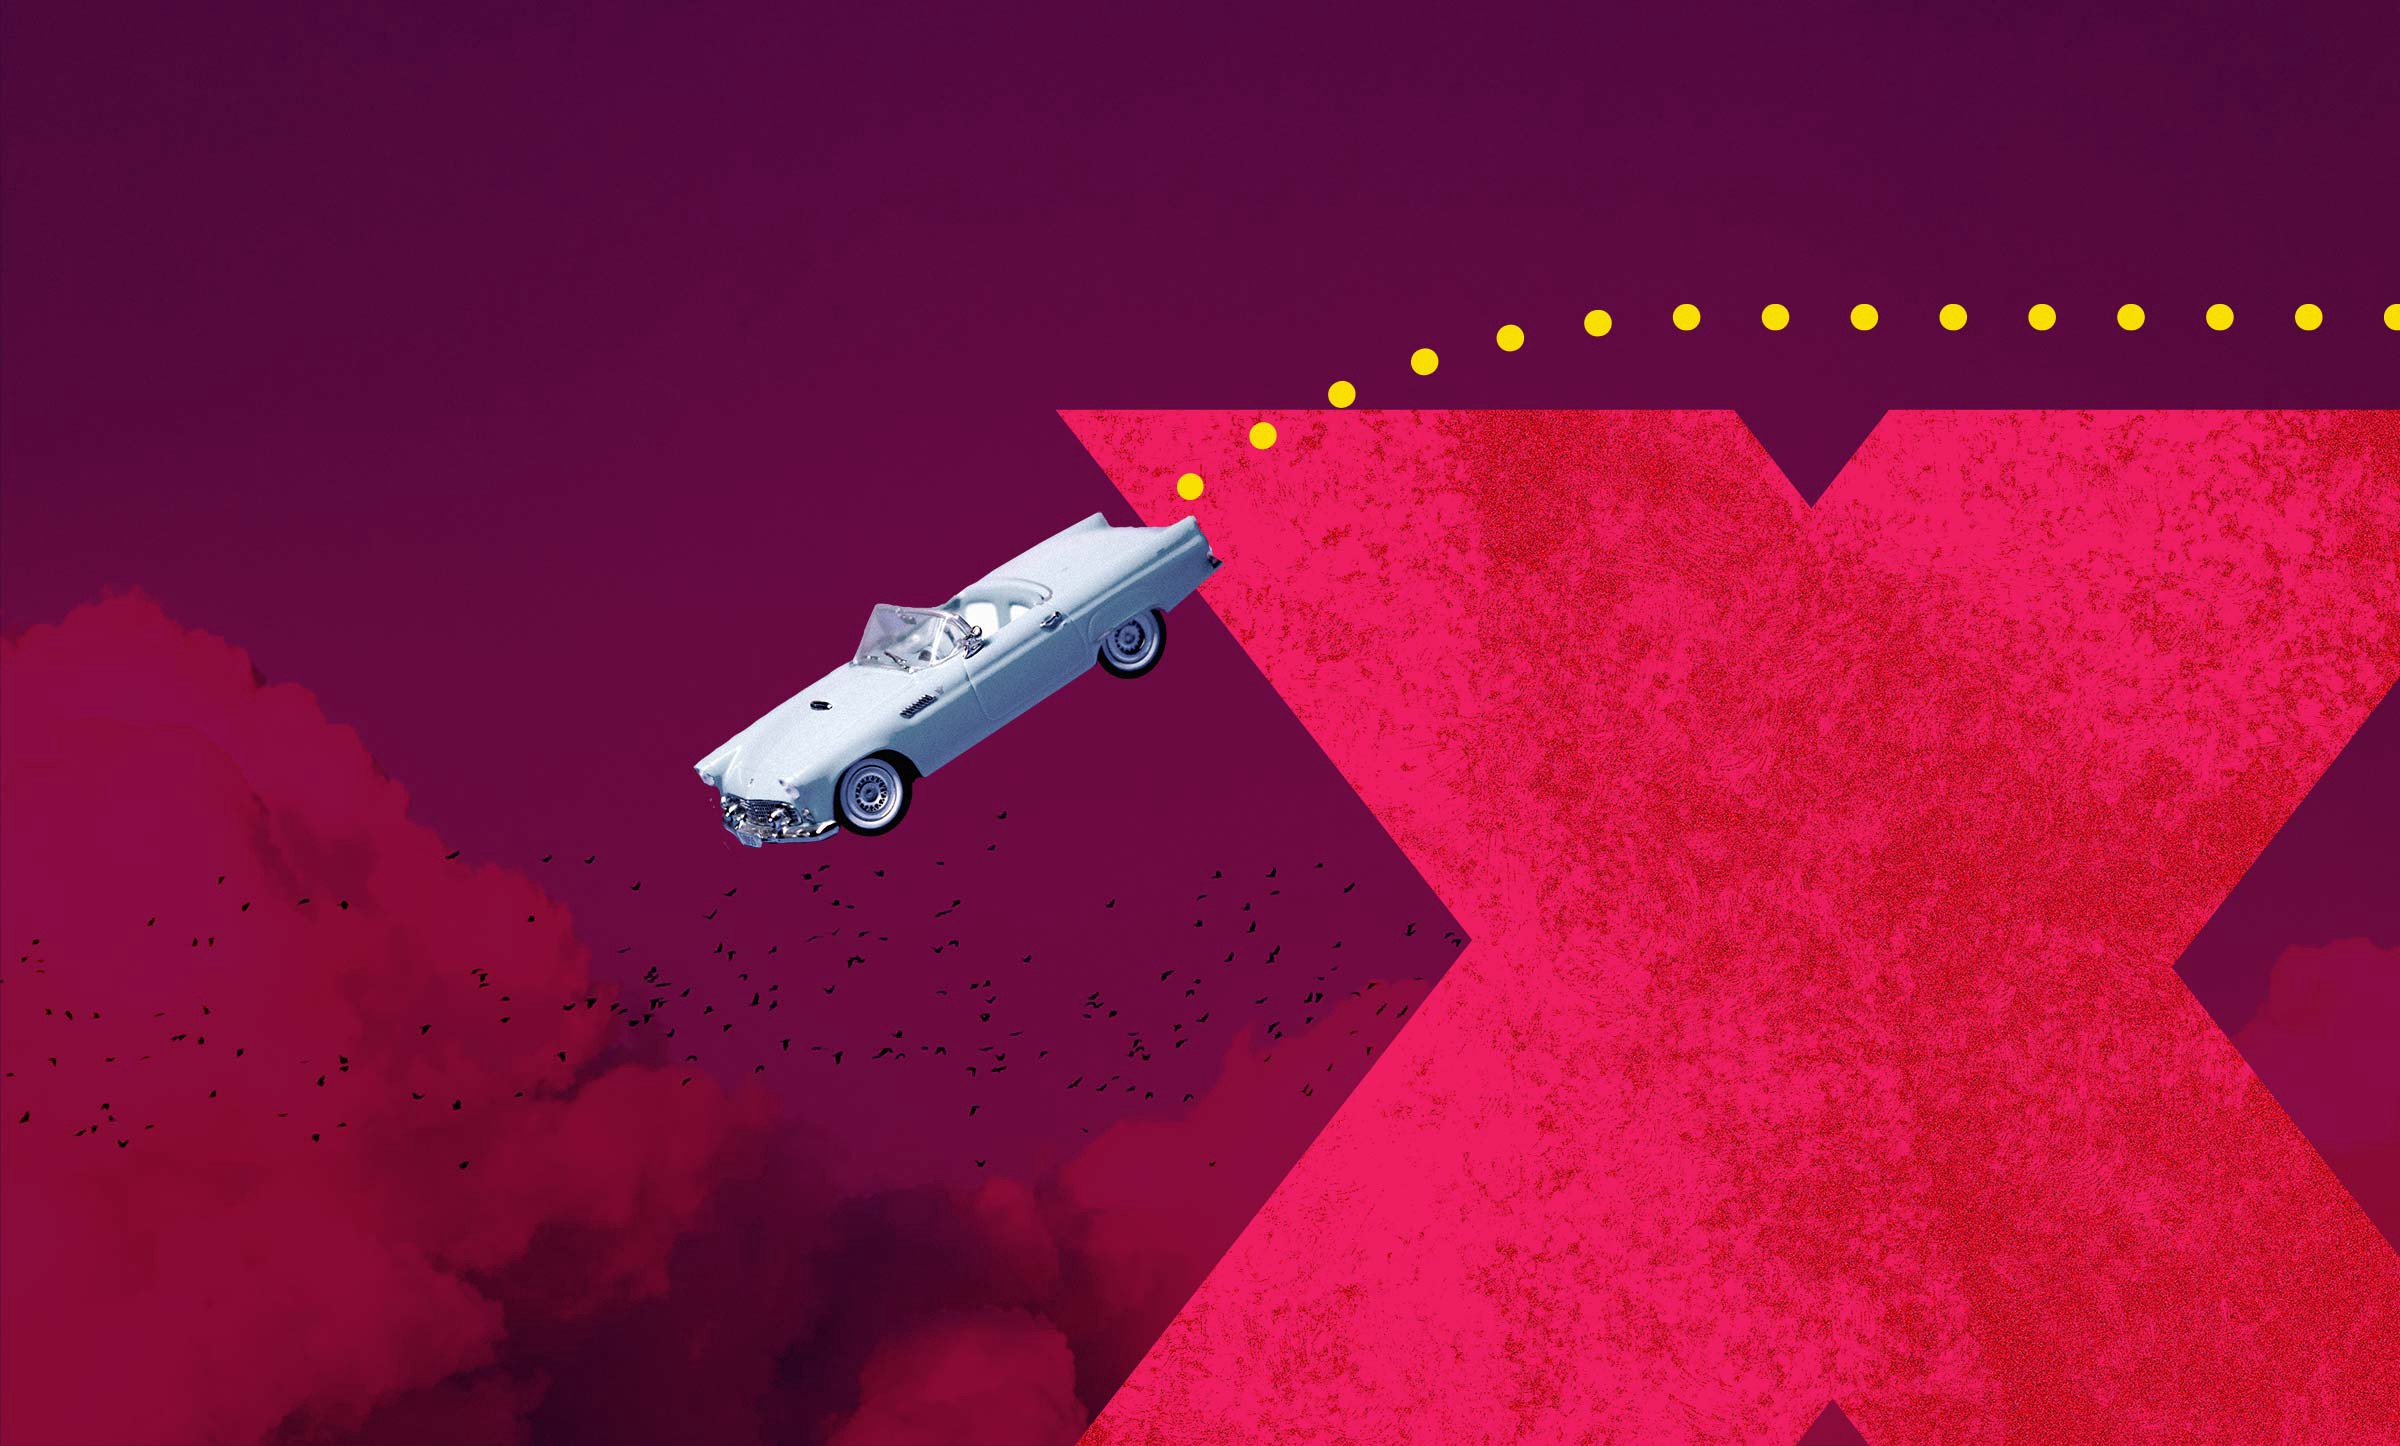 Graphic of a classic car careening off the edge of a cliff formed by the letter X into dark pink clouds.